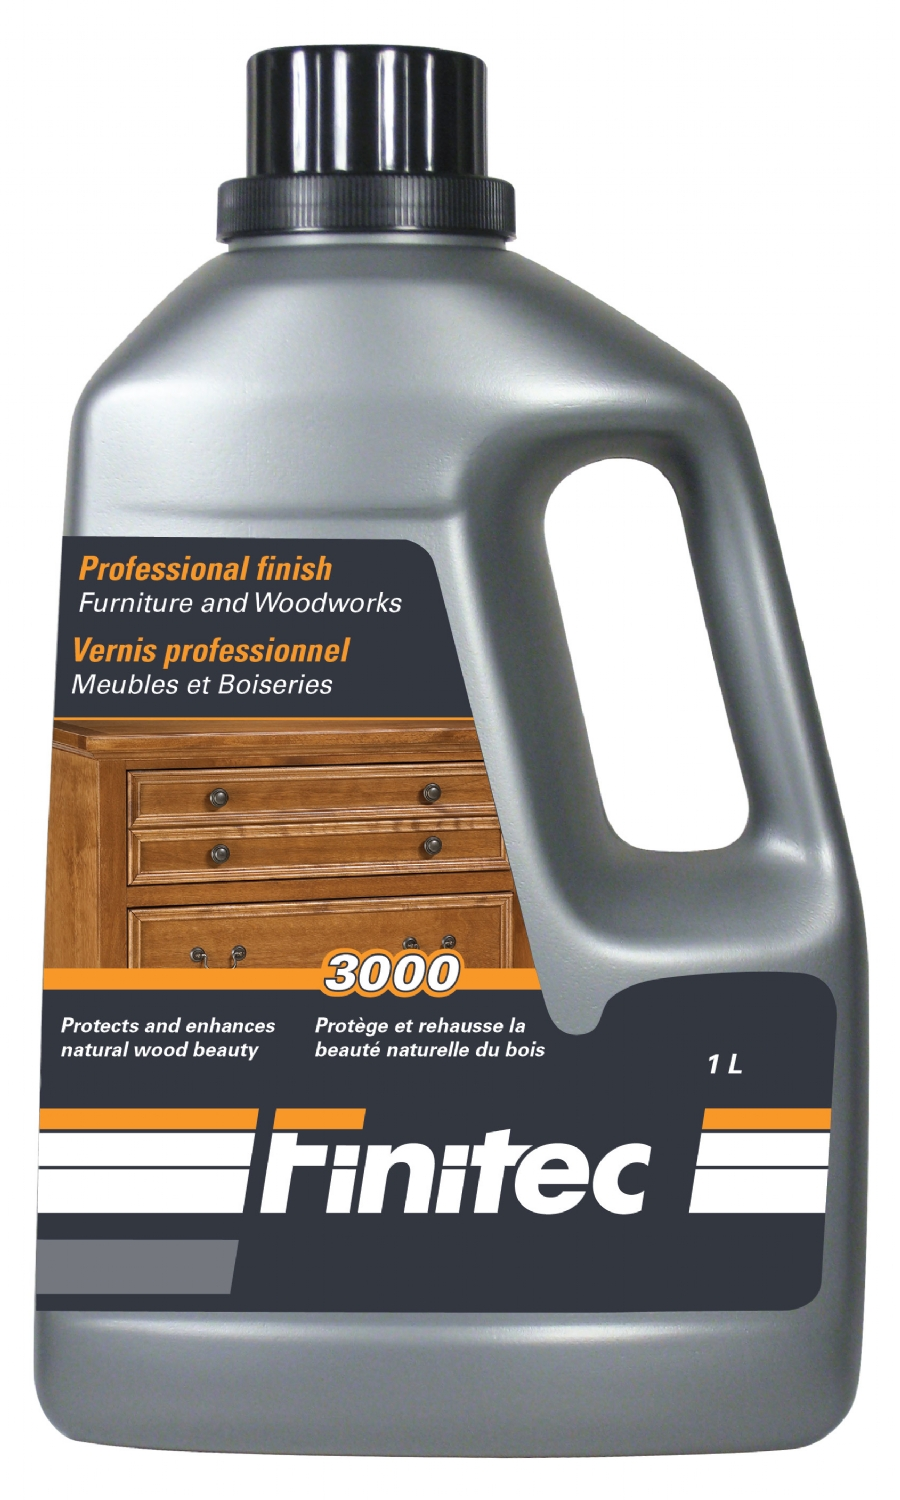 Finitec 3000 vernis pour Meubles et boiseries - finish for Furniture and Woodwork